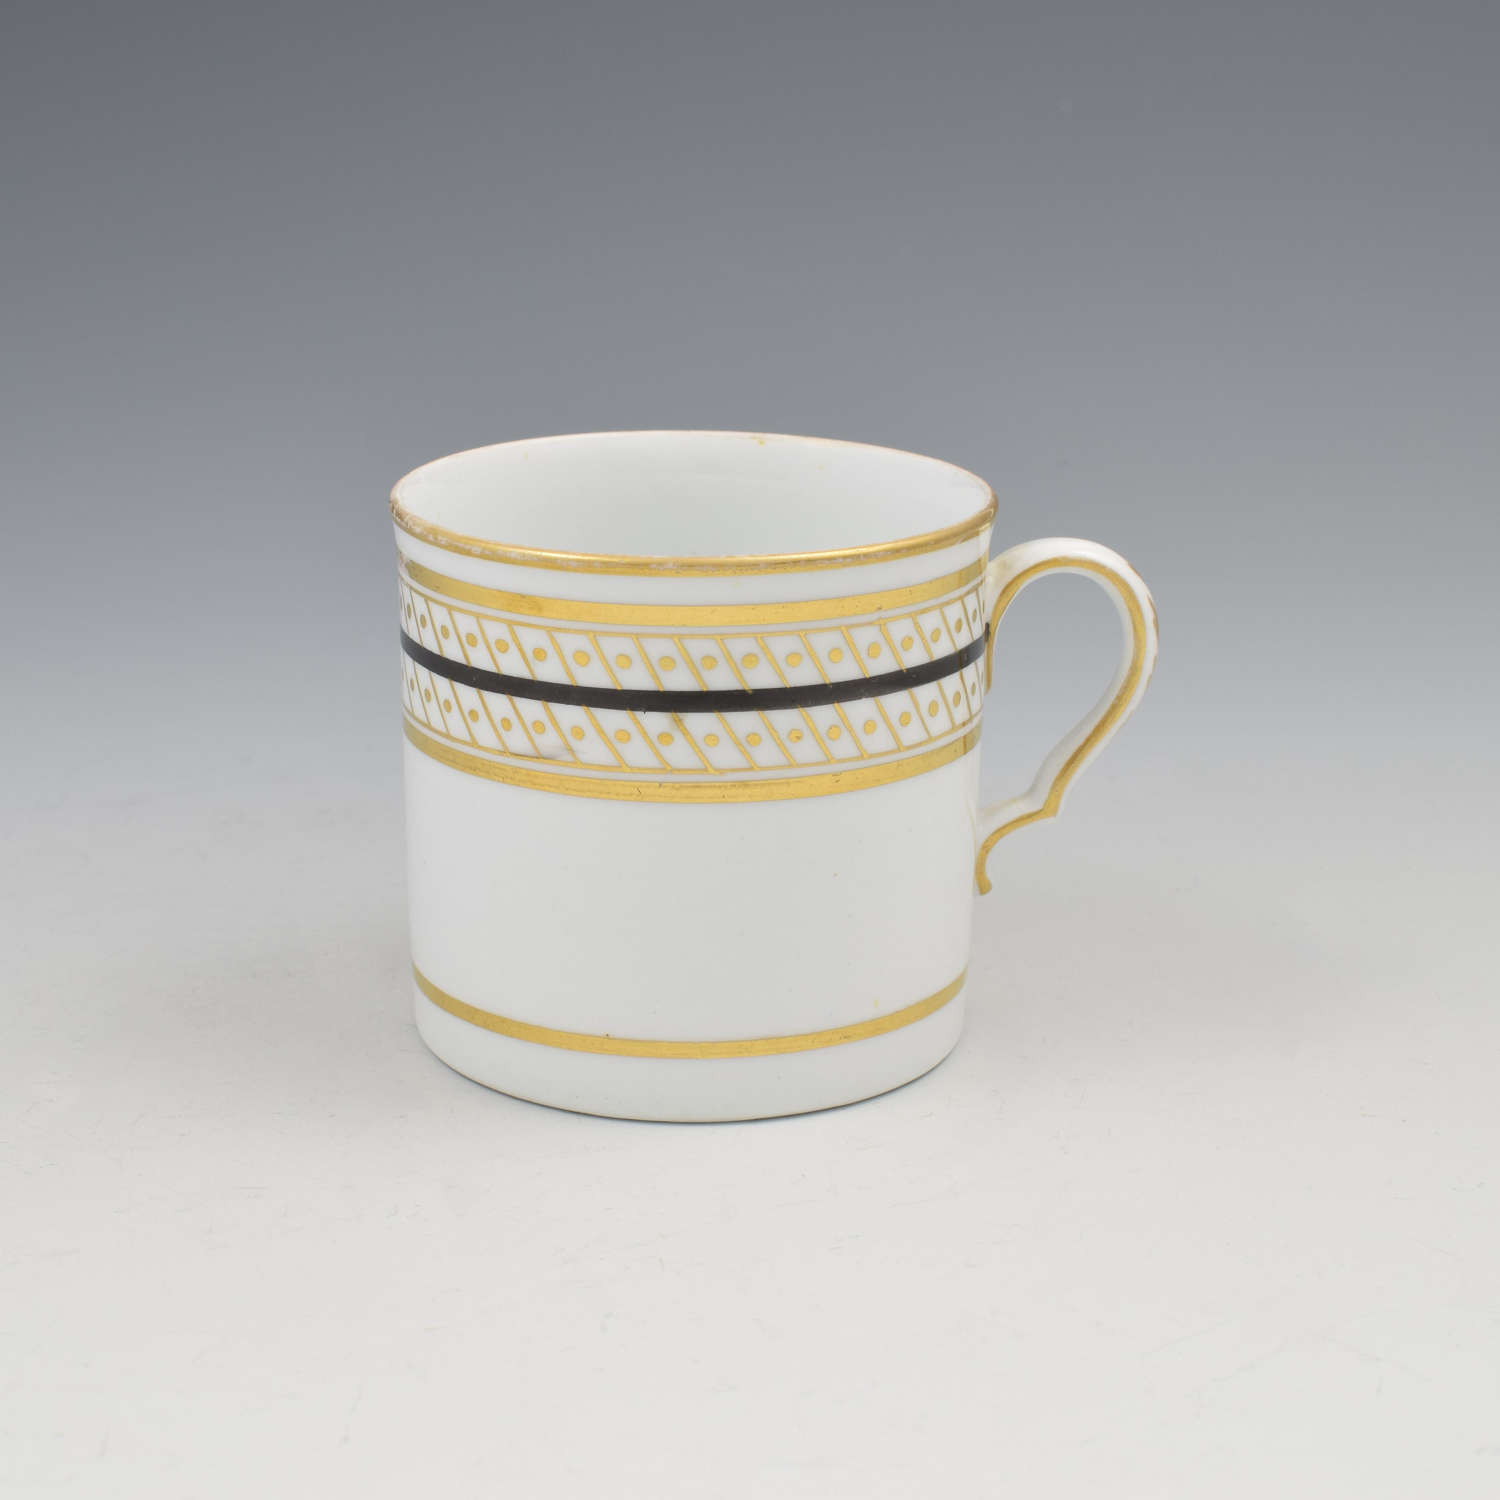 Spode Porcelain Coffee Can c.1805